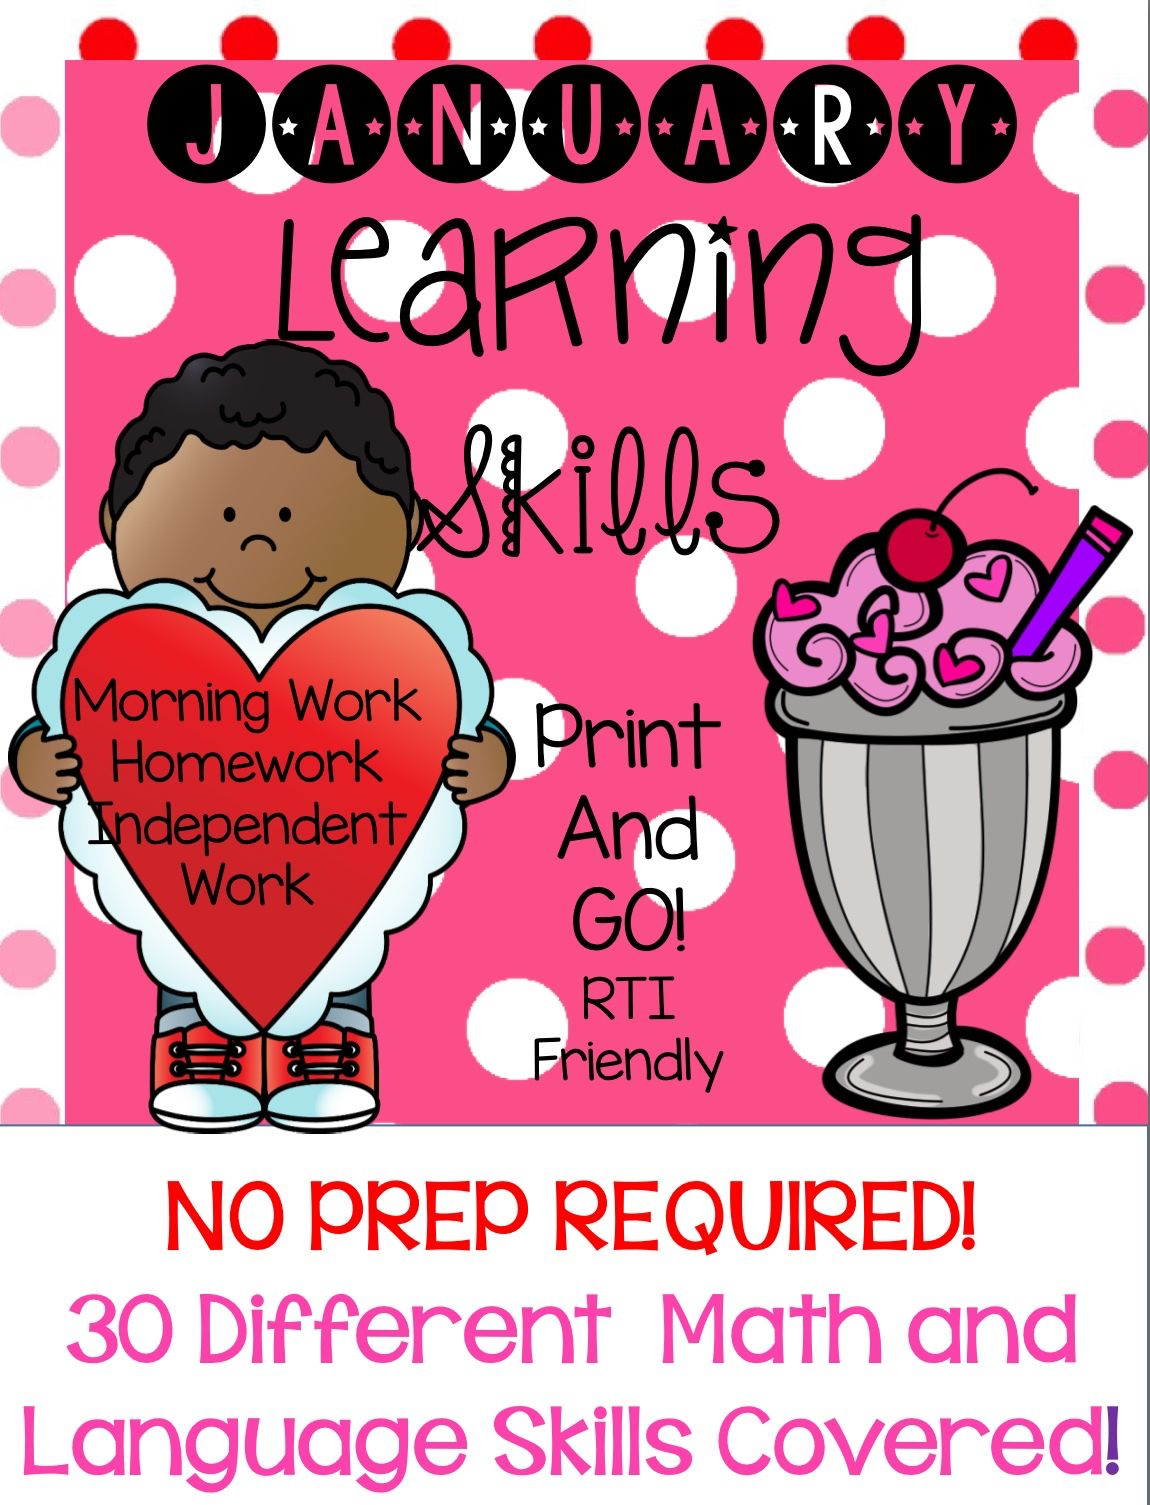 No Prep February Learning Skills Pre K4 And Kindergarten